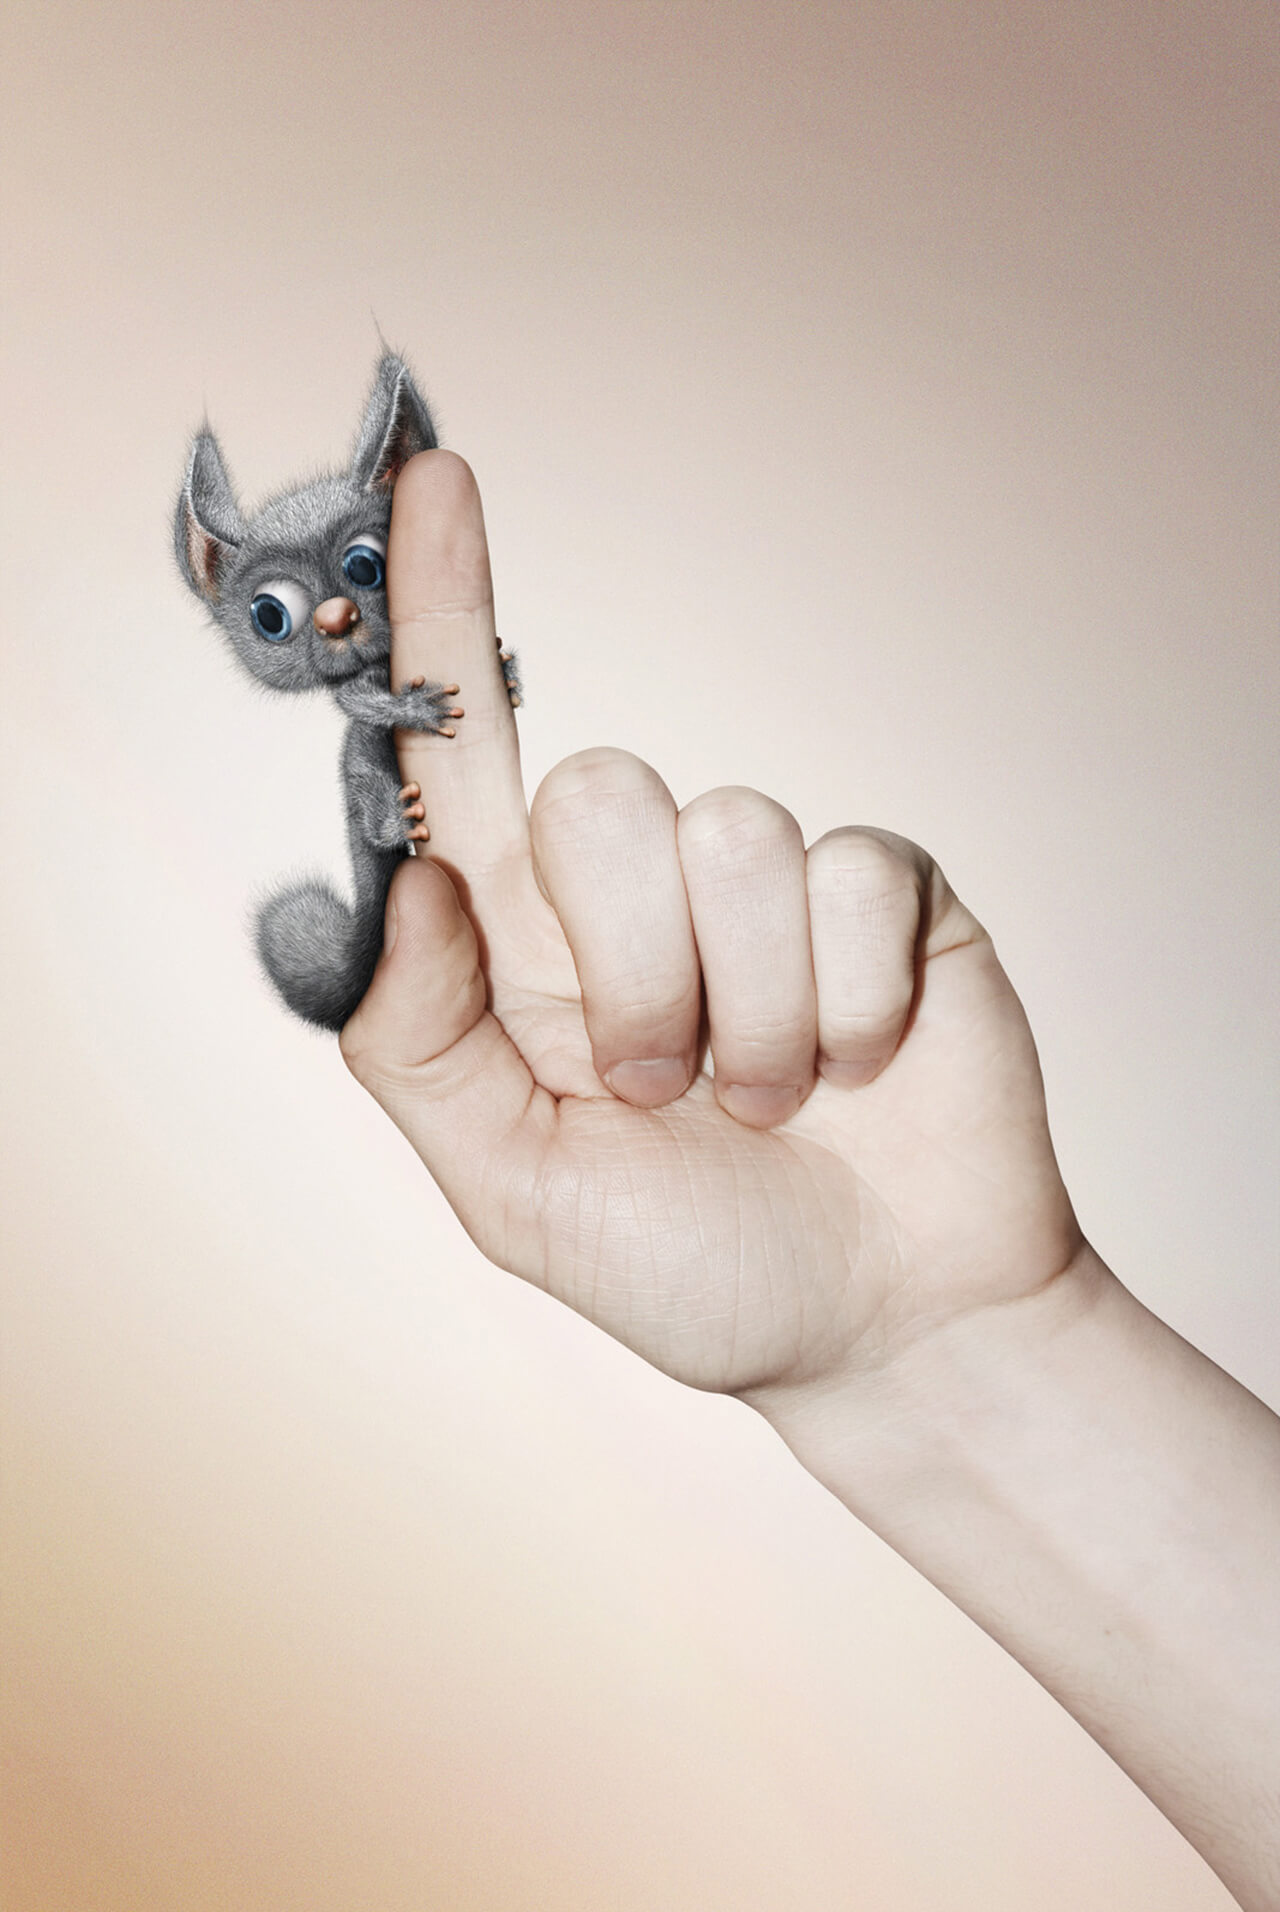 Computer generated Image of a friendly furry animal grabbing onto a hand